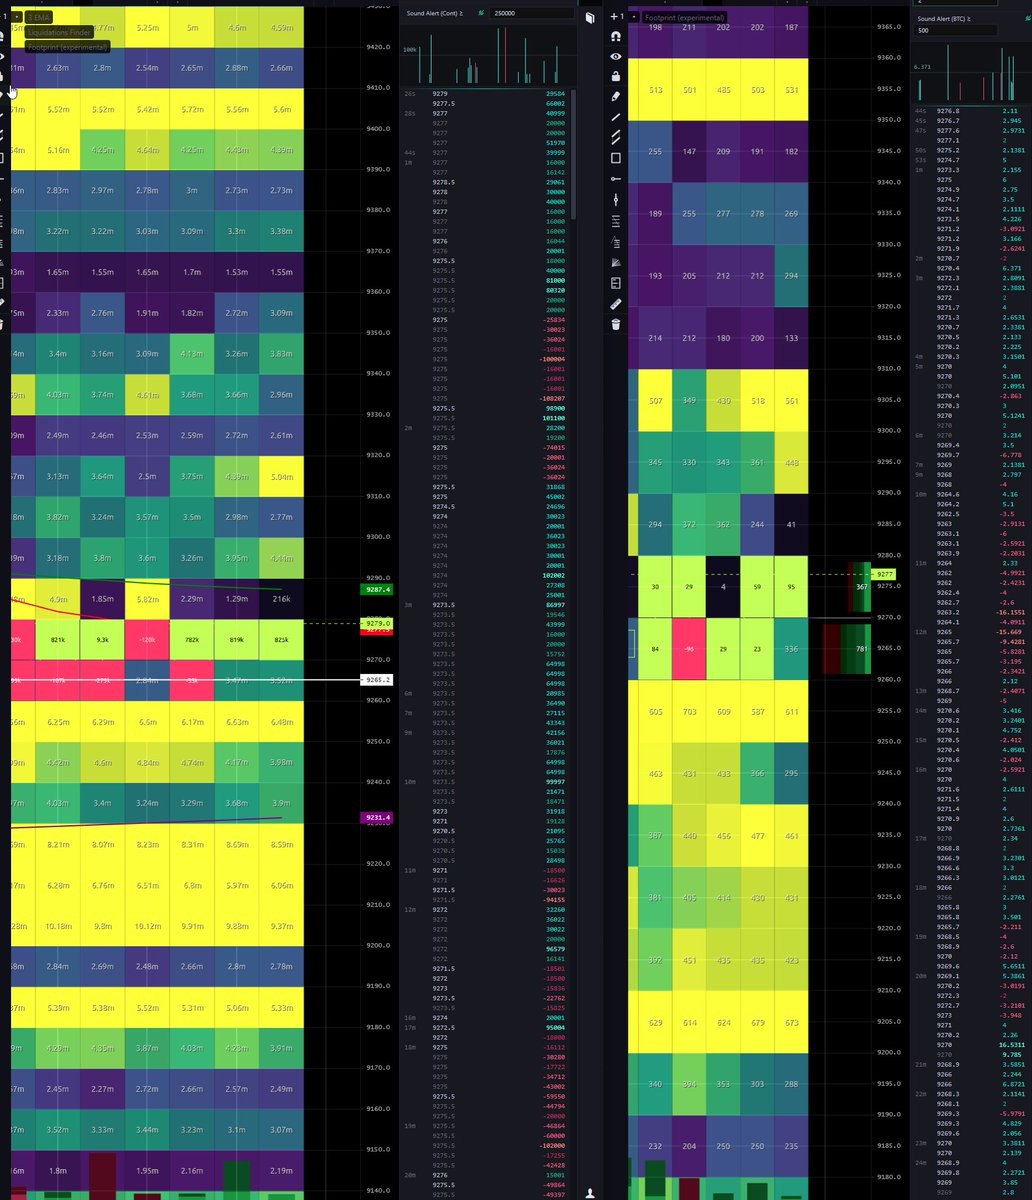 Walls stacking, final squeeze to 9.4k on the cards? #btc #eth https://t.co/enZQrXz5Yg